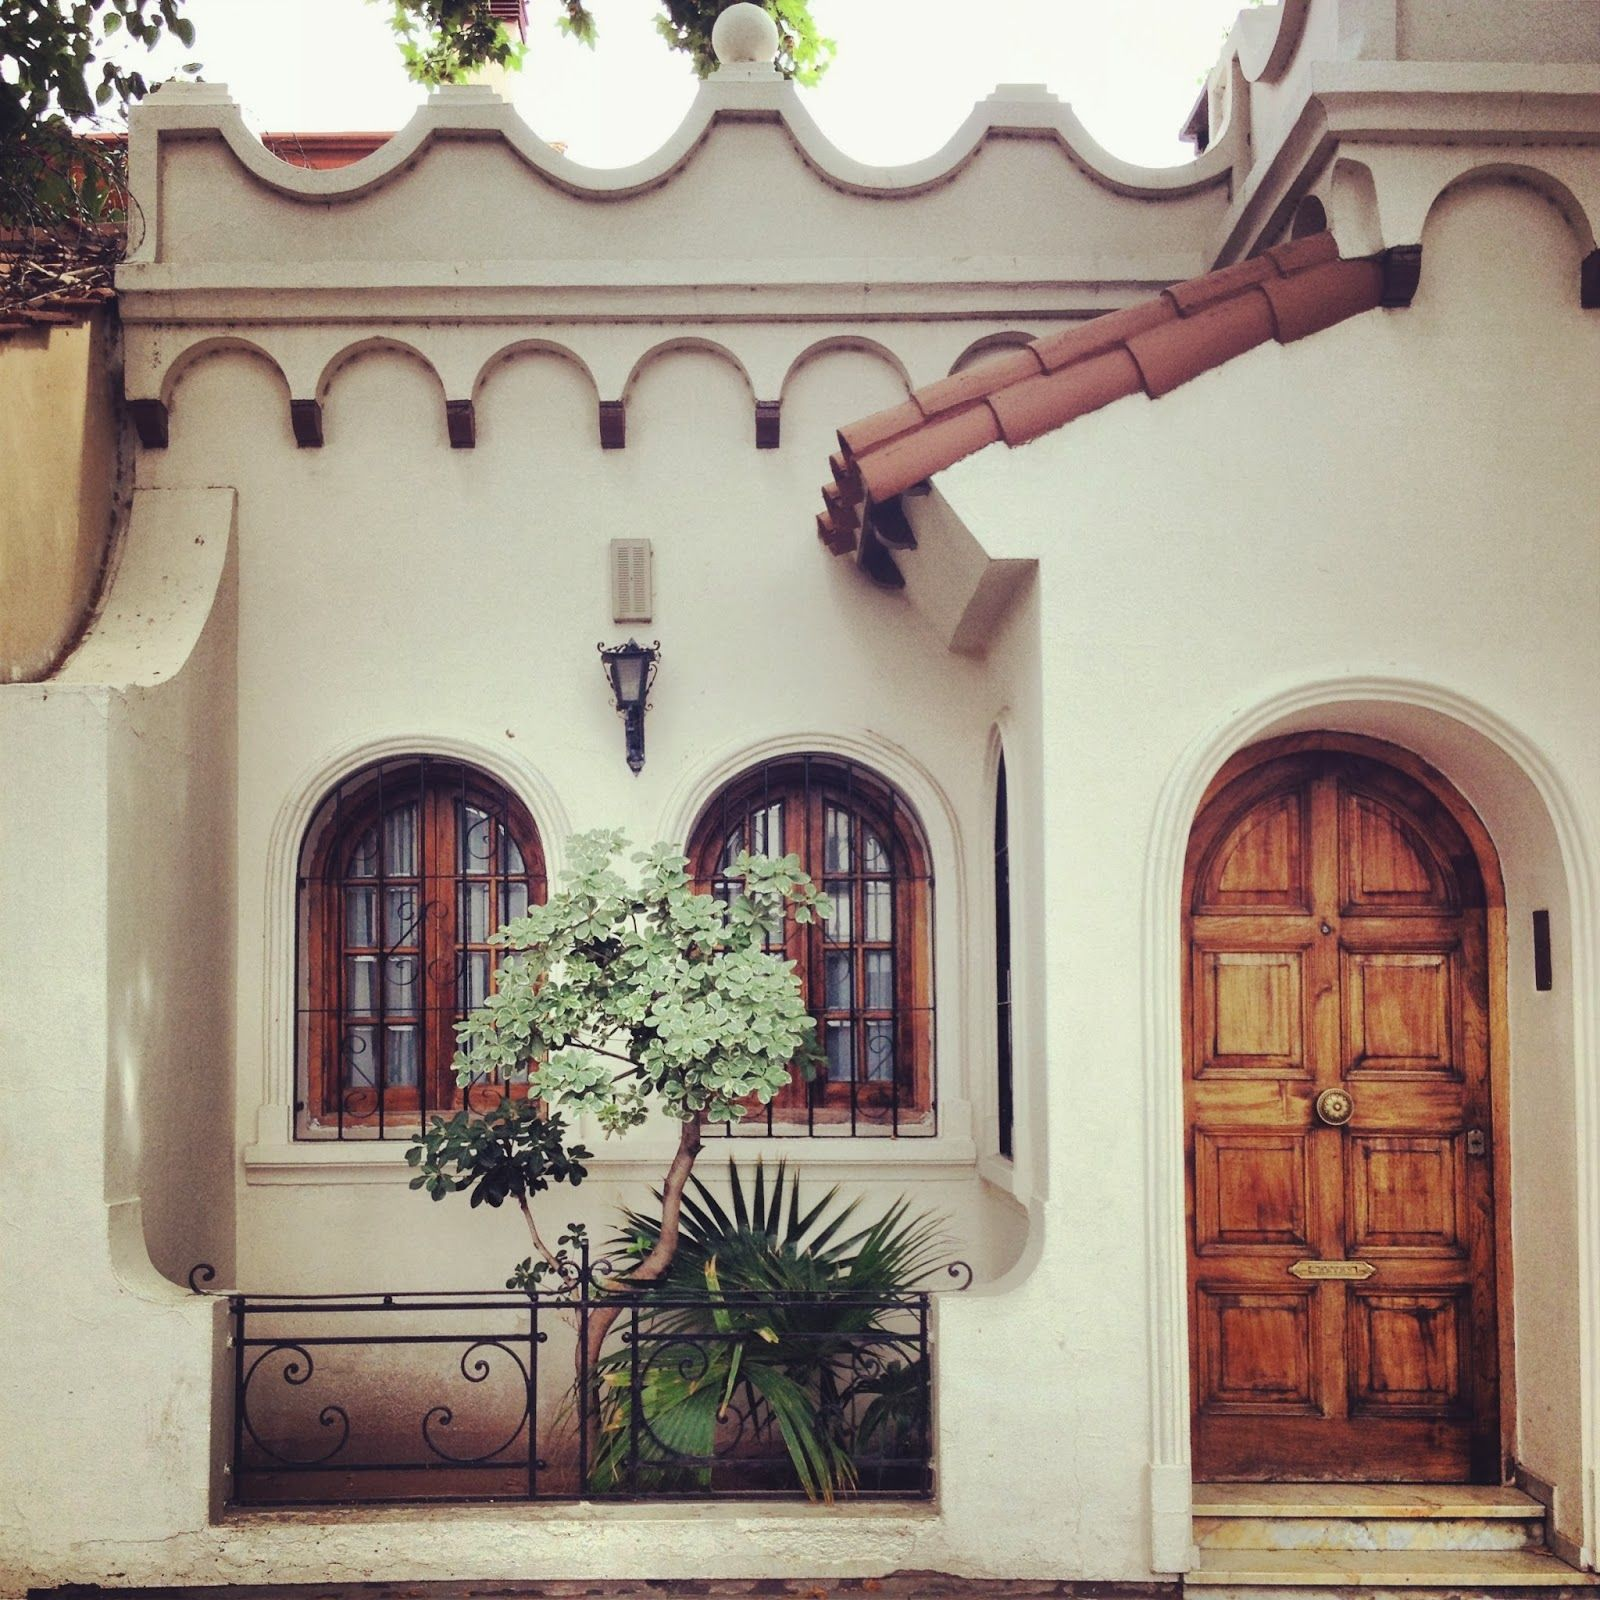 Spanish Hacienda Style Homes: All Things Amber: Little Spanish Houses...